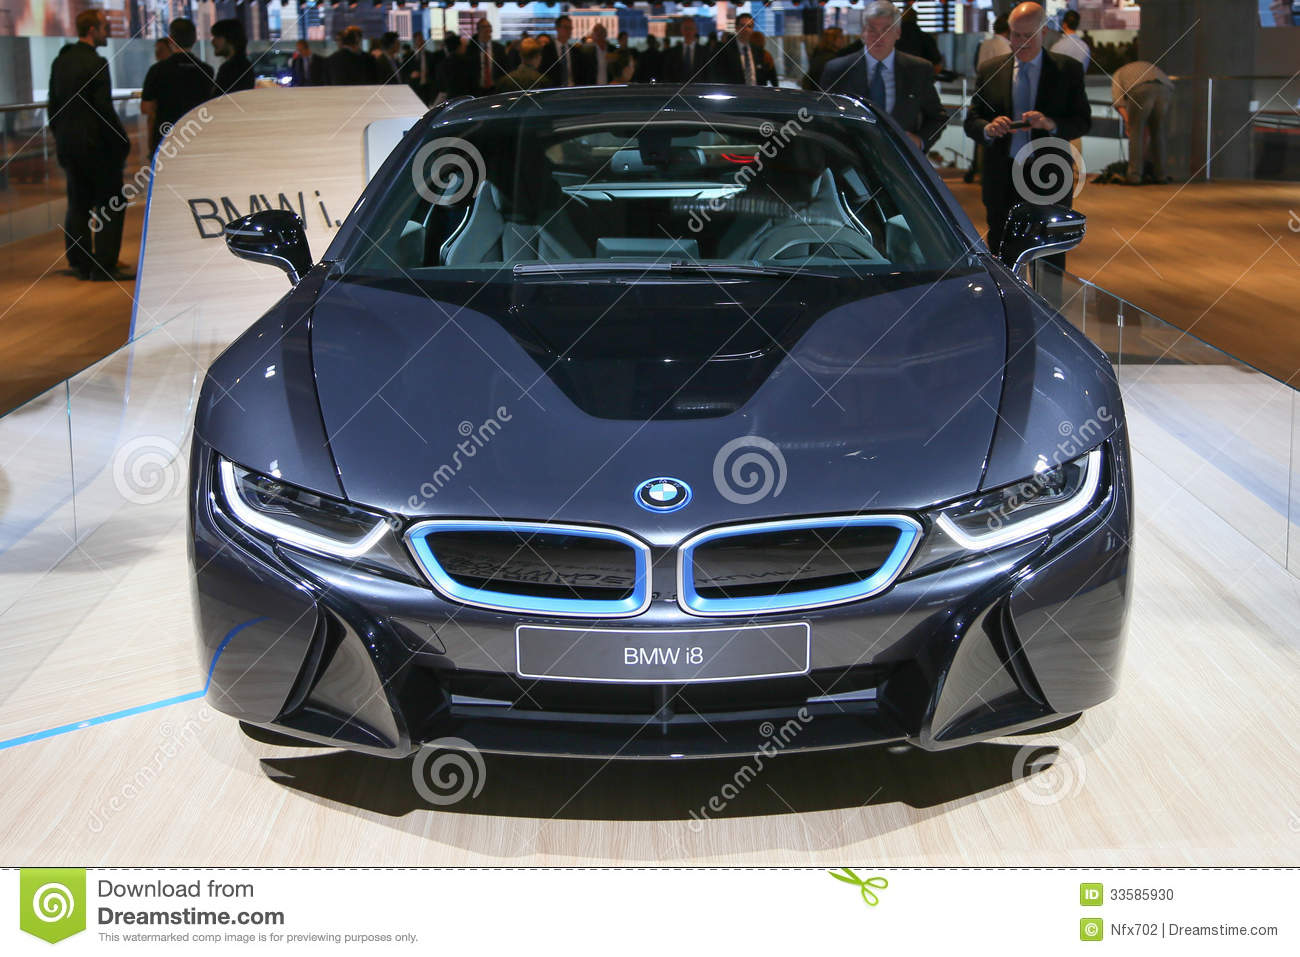 insteek hybride sportwagen bmw i8 redactionele afbeelding afbeelding 33585930. Black Bedroom Furniture Sets. Home Design Ideas